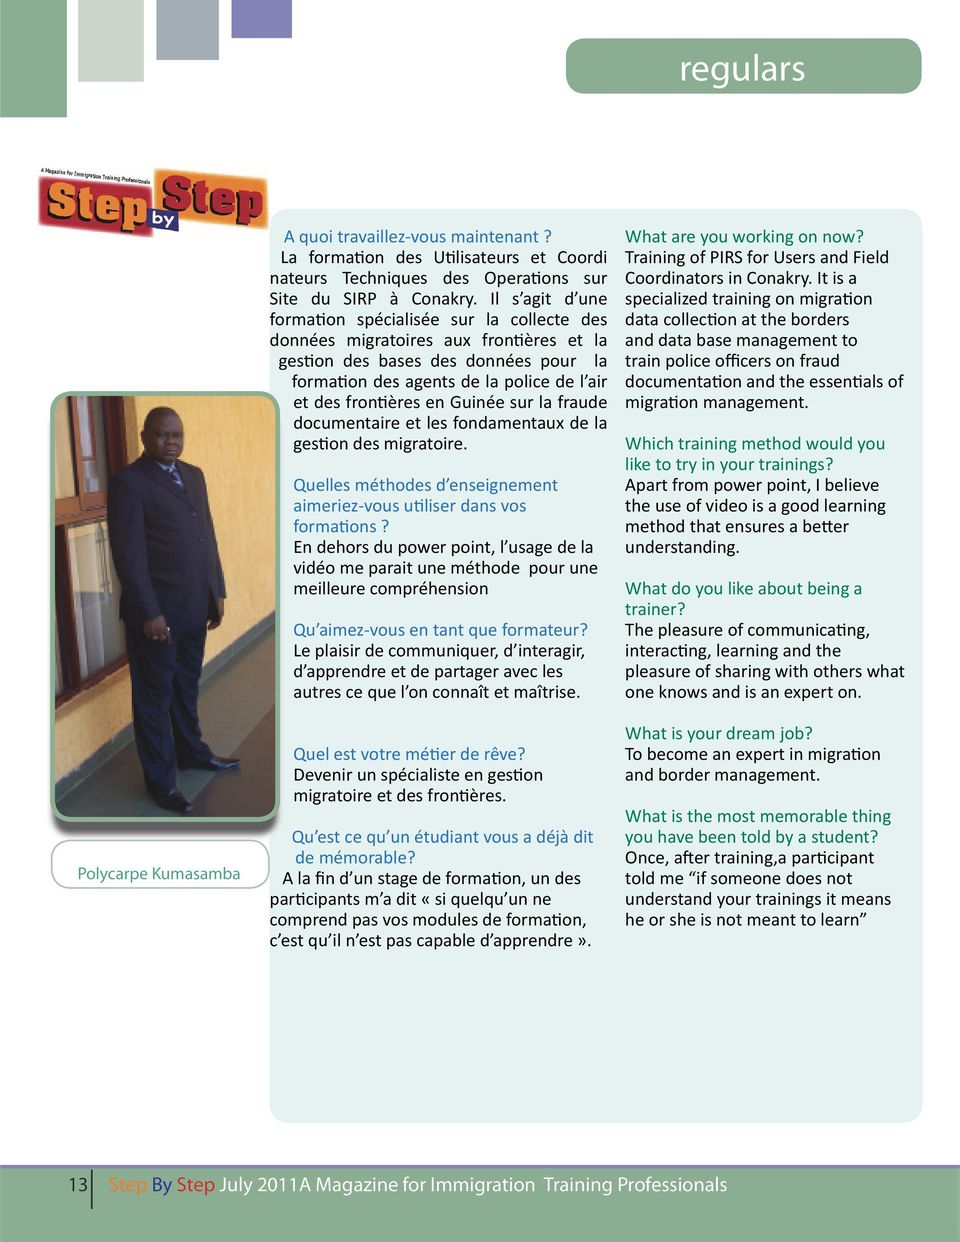 By Step July 2011A Magazine for